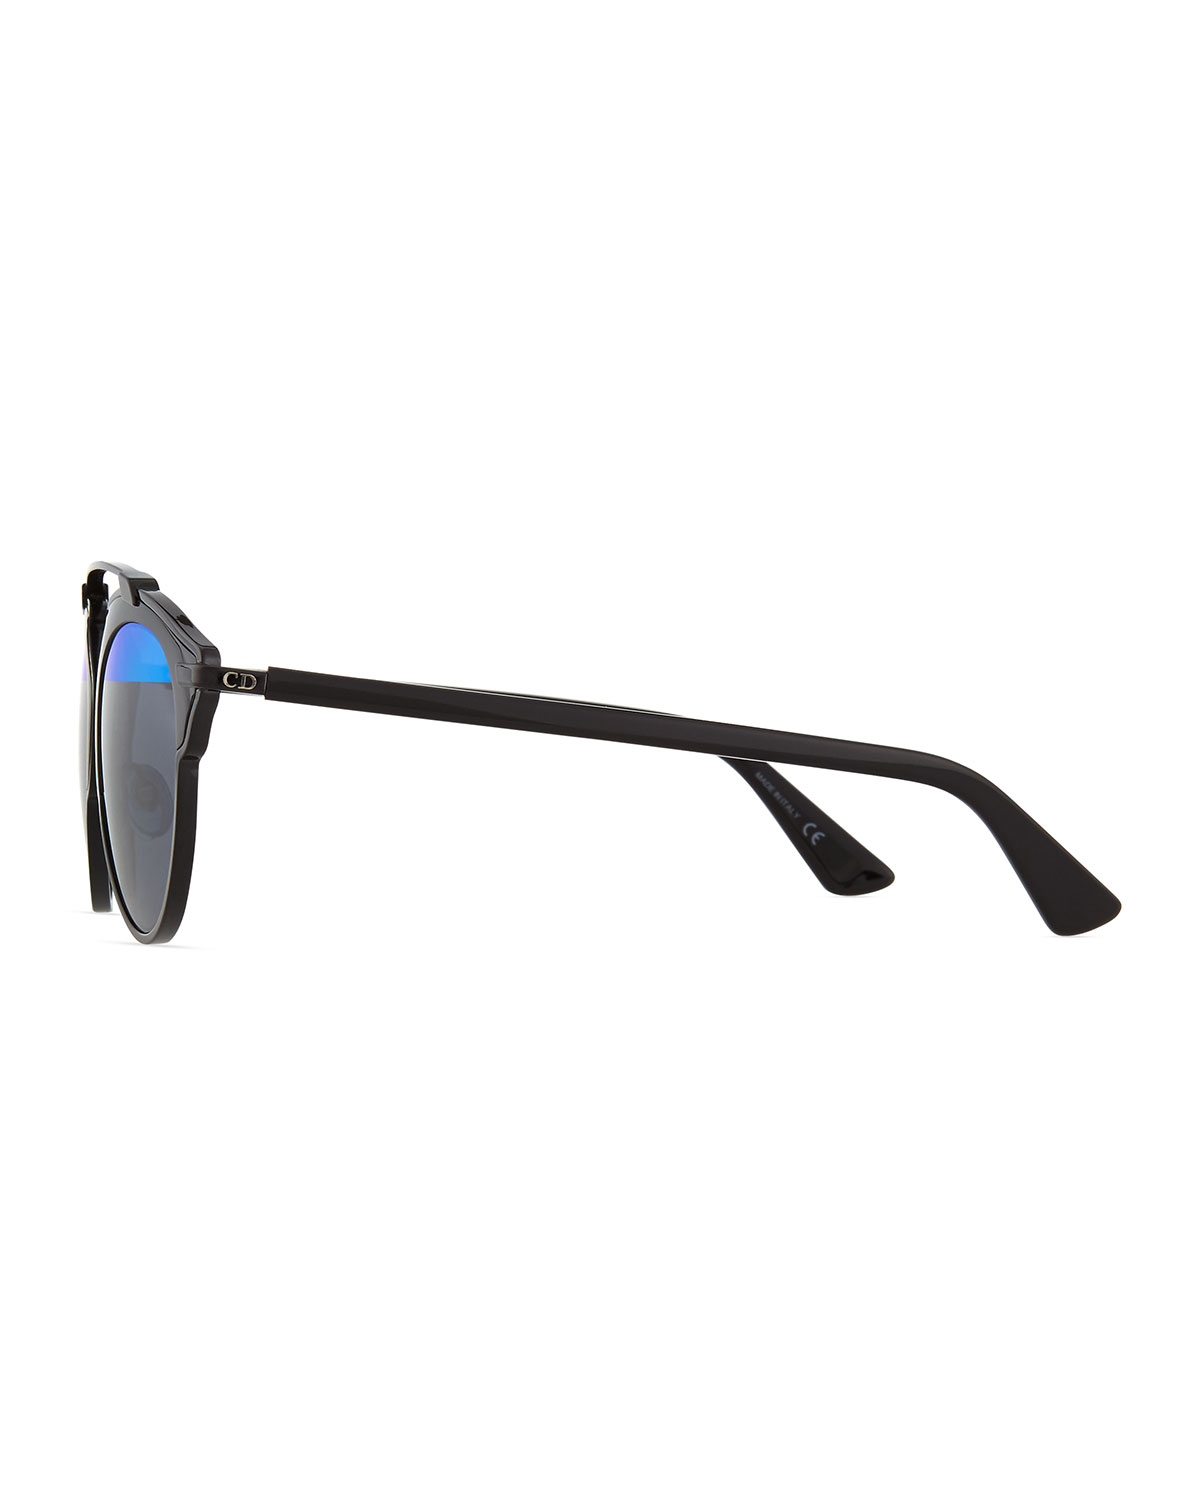 Dior So Real Brow Bar Sunglasses, Black